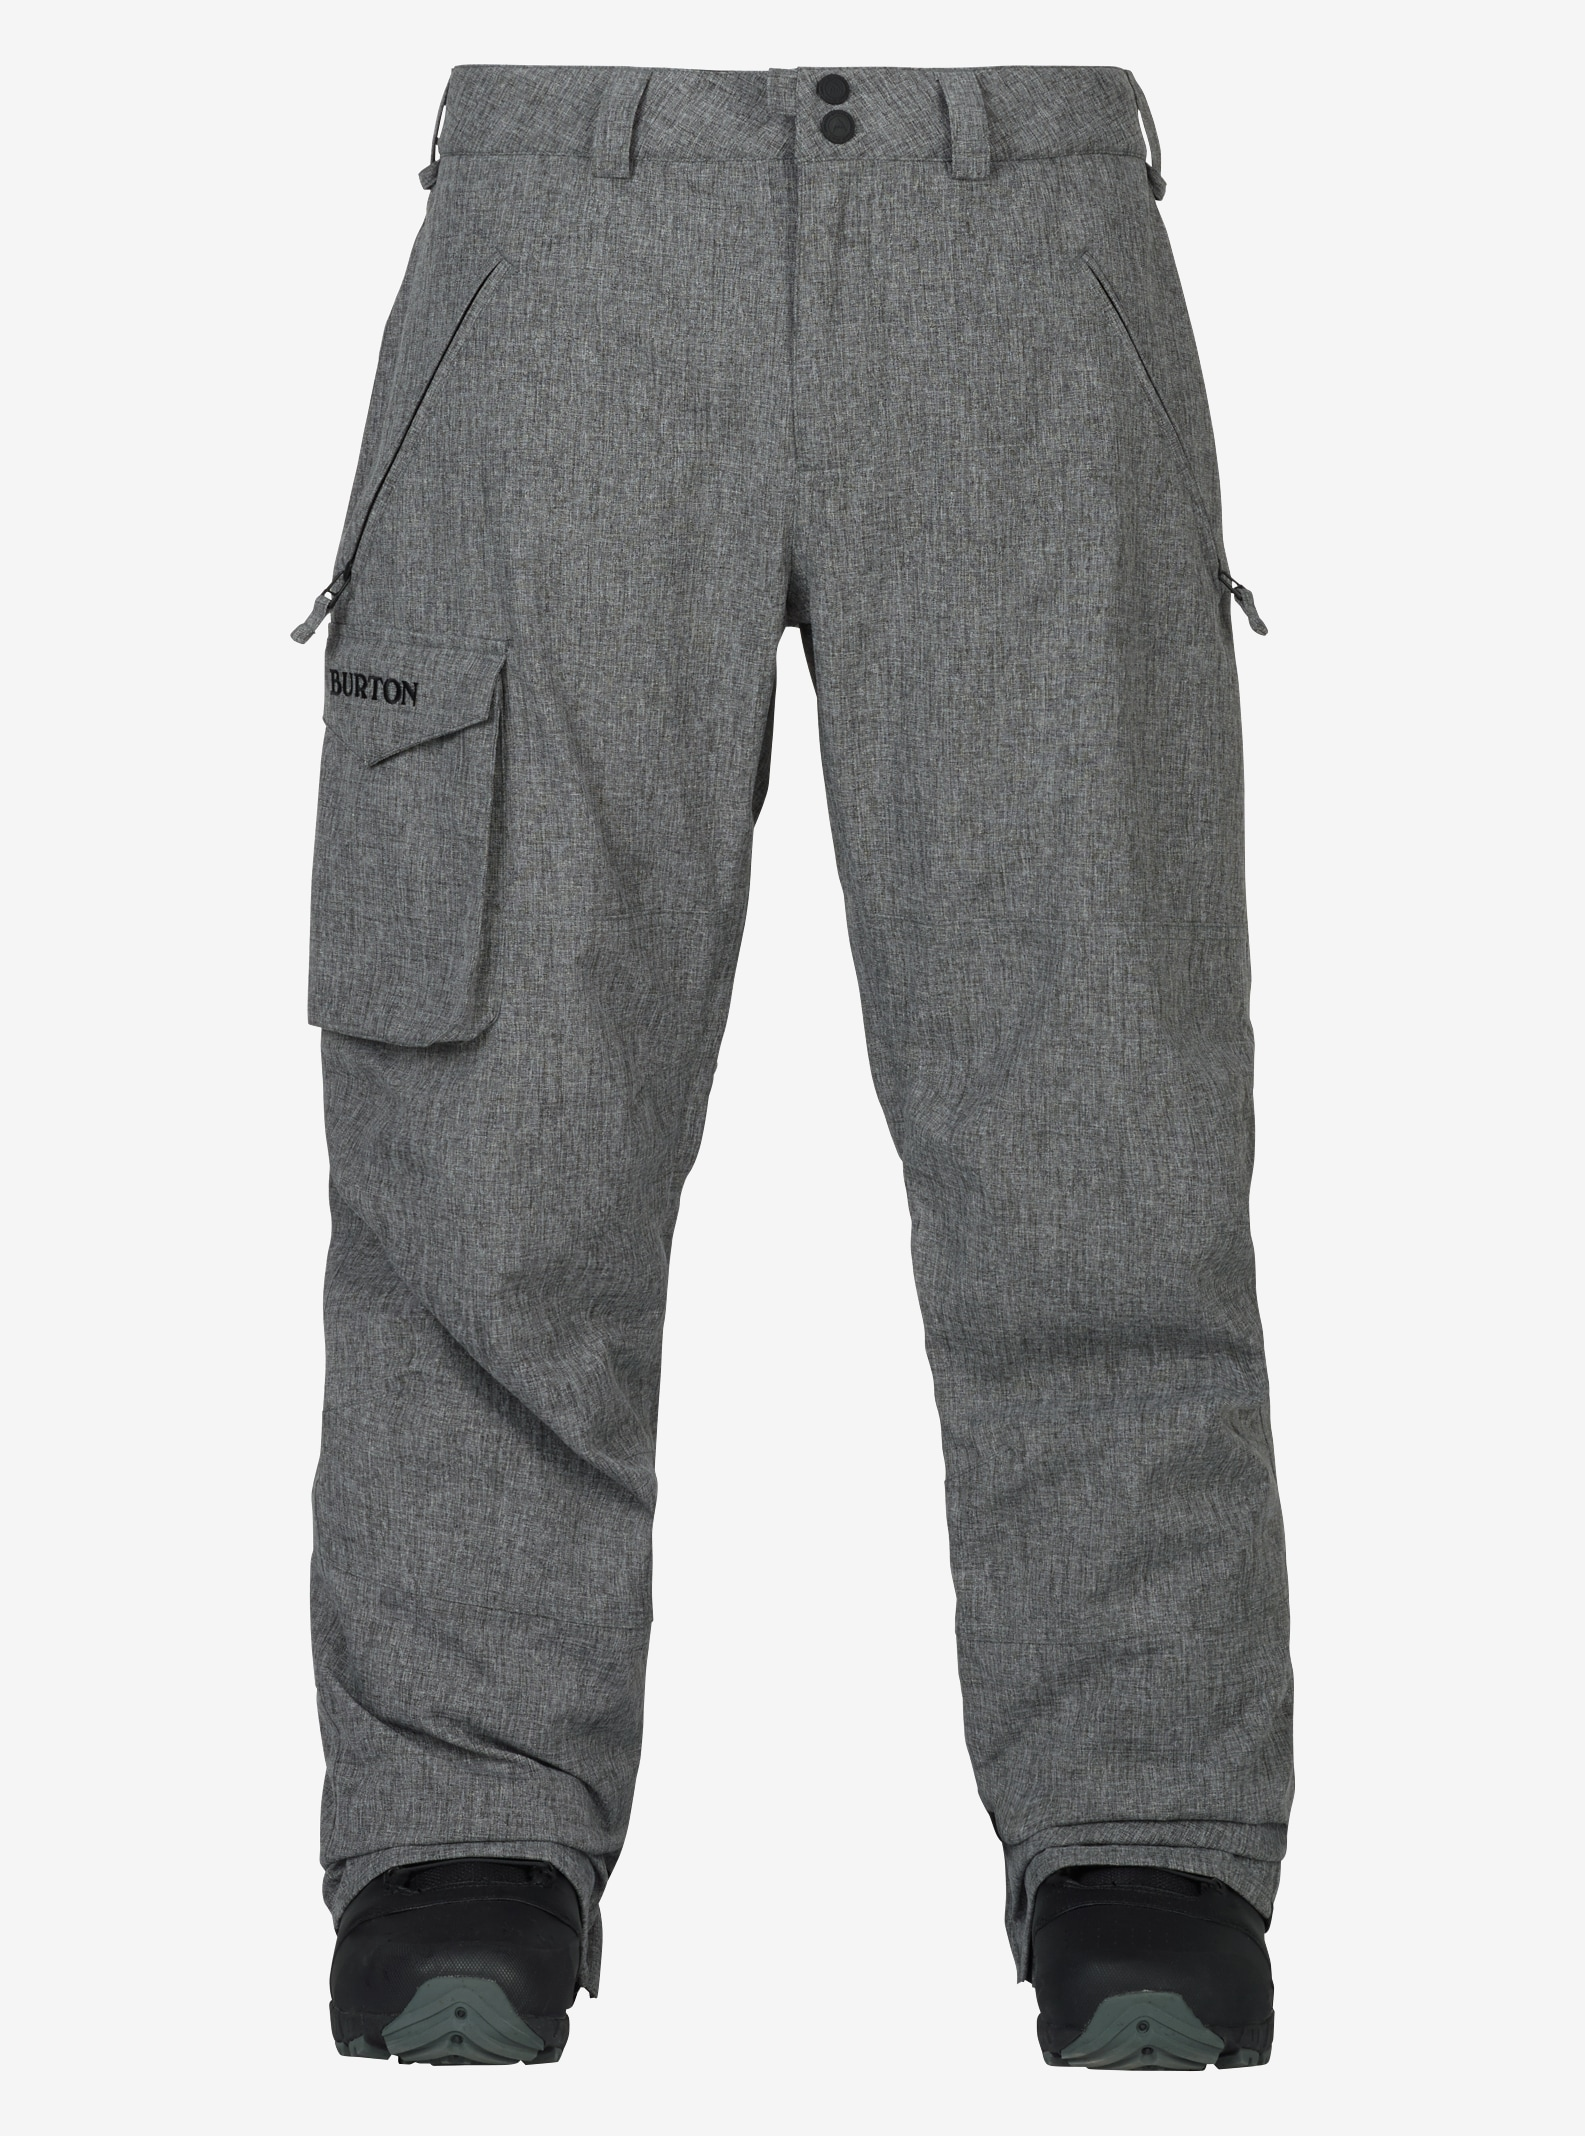 Men's Burton Insulated Covert Pant shown in Bog Heather